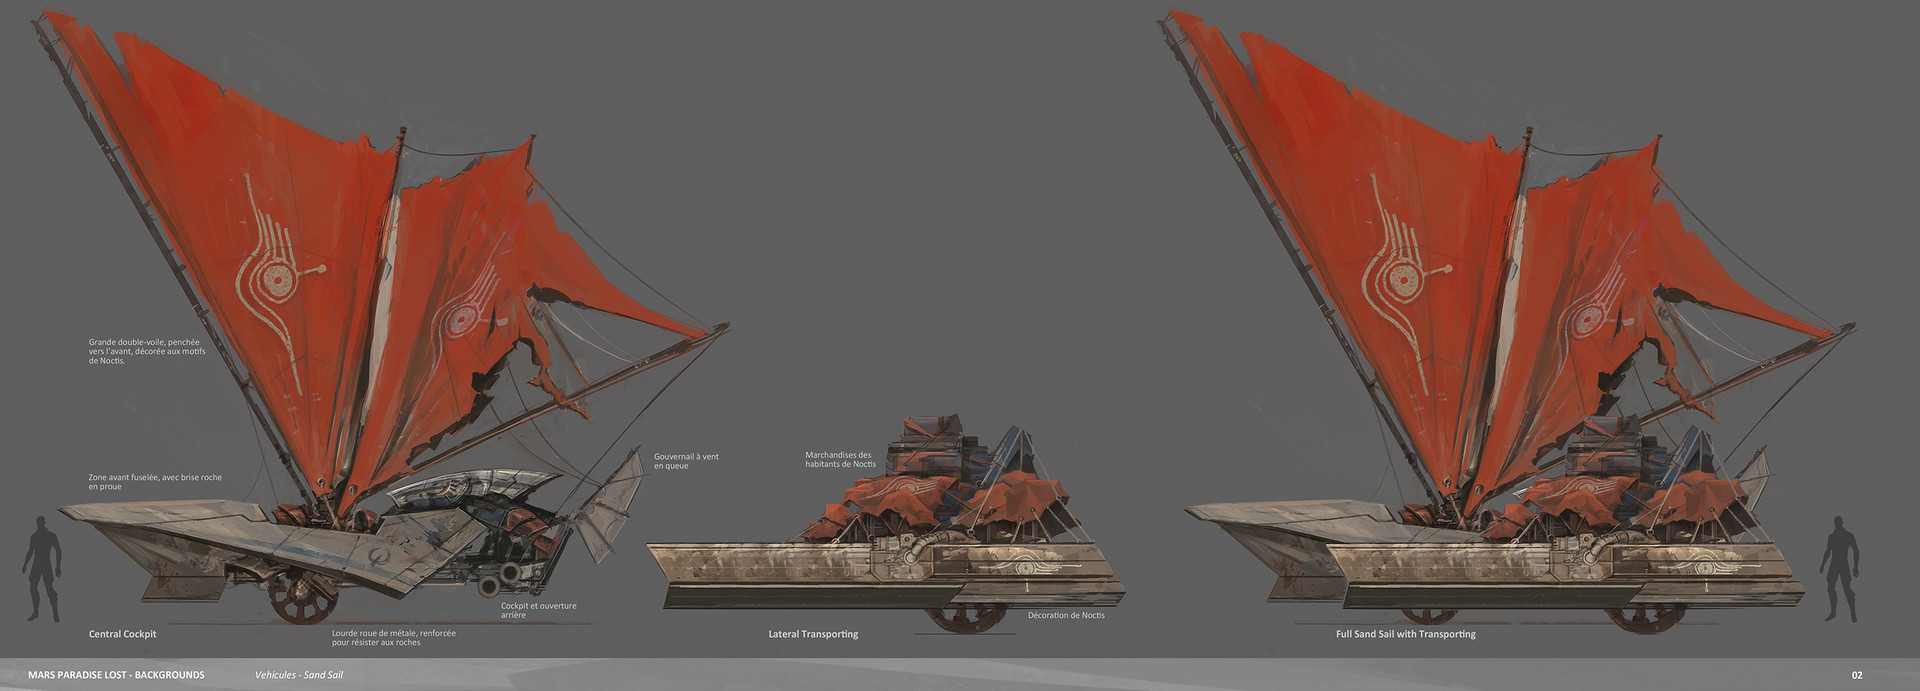 Alexandre chaudret mpl backgrounds vehicules sandsails02